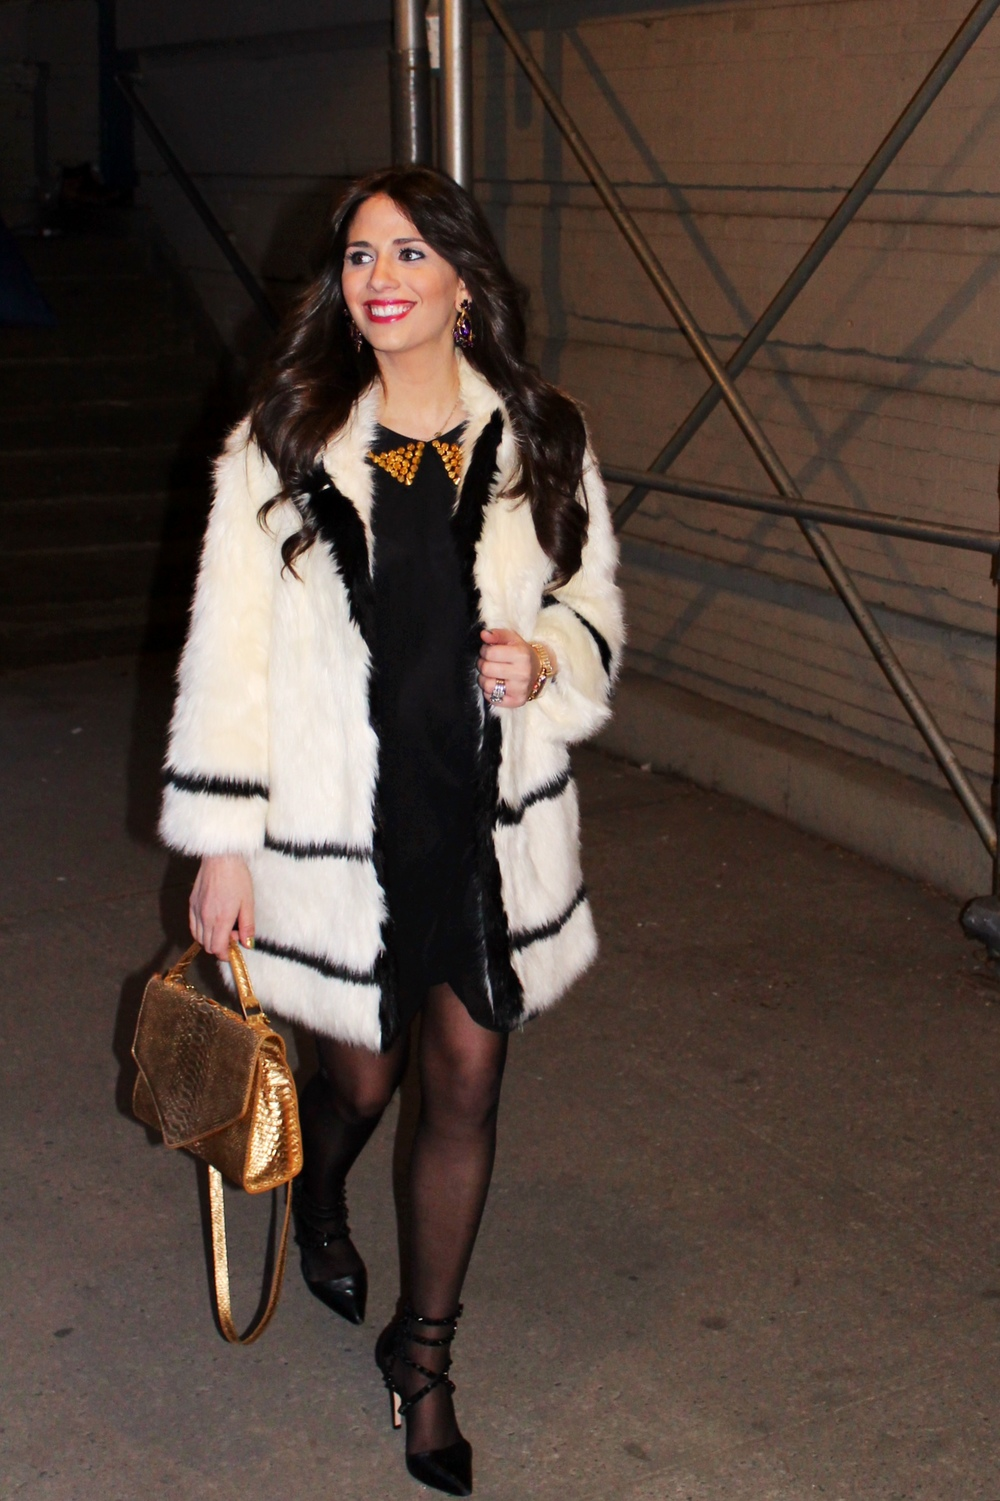 Dress: ASOS, Shoes: Alice and Olivia, Coat: H&M Paris Collection, Bag: Emily Cho, Earrings: Erickson Beamon